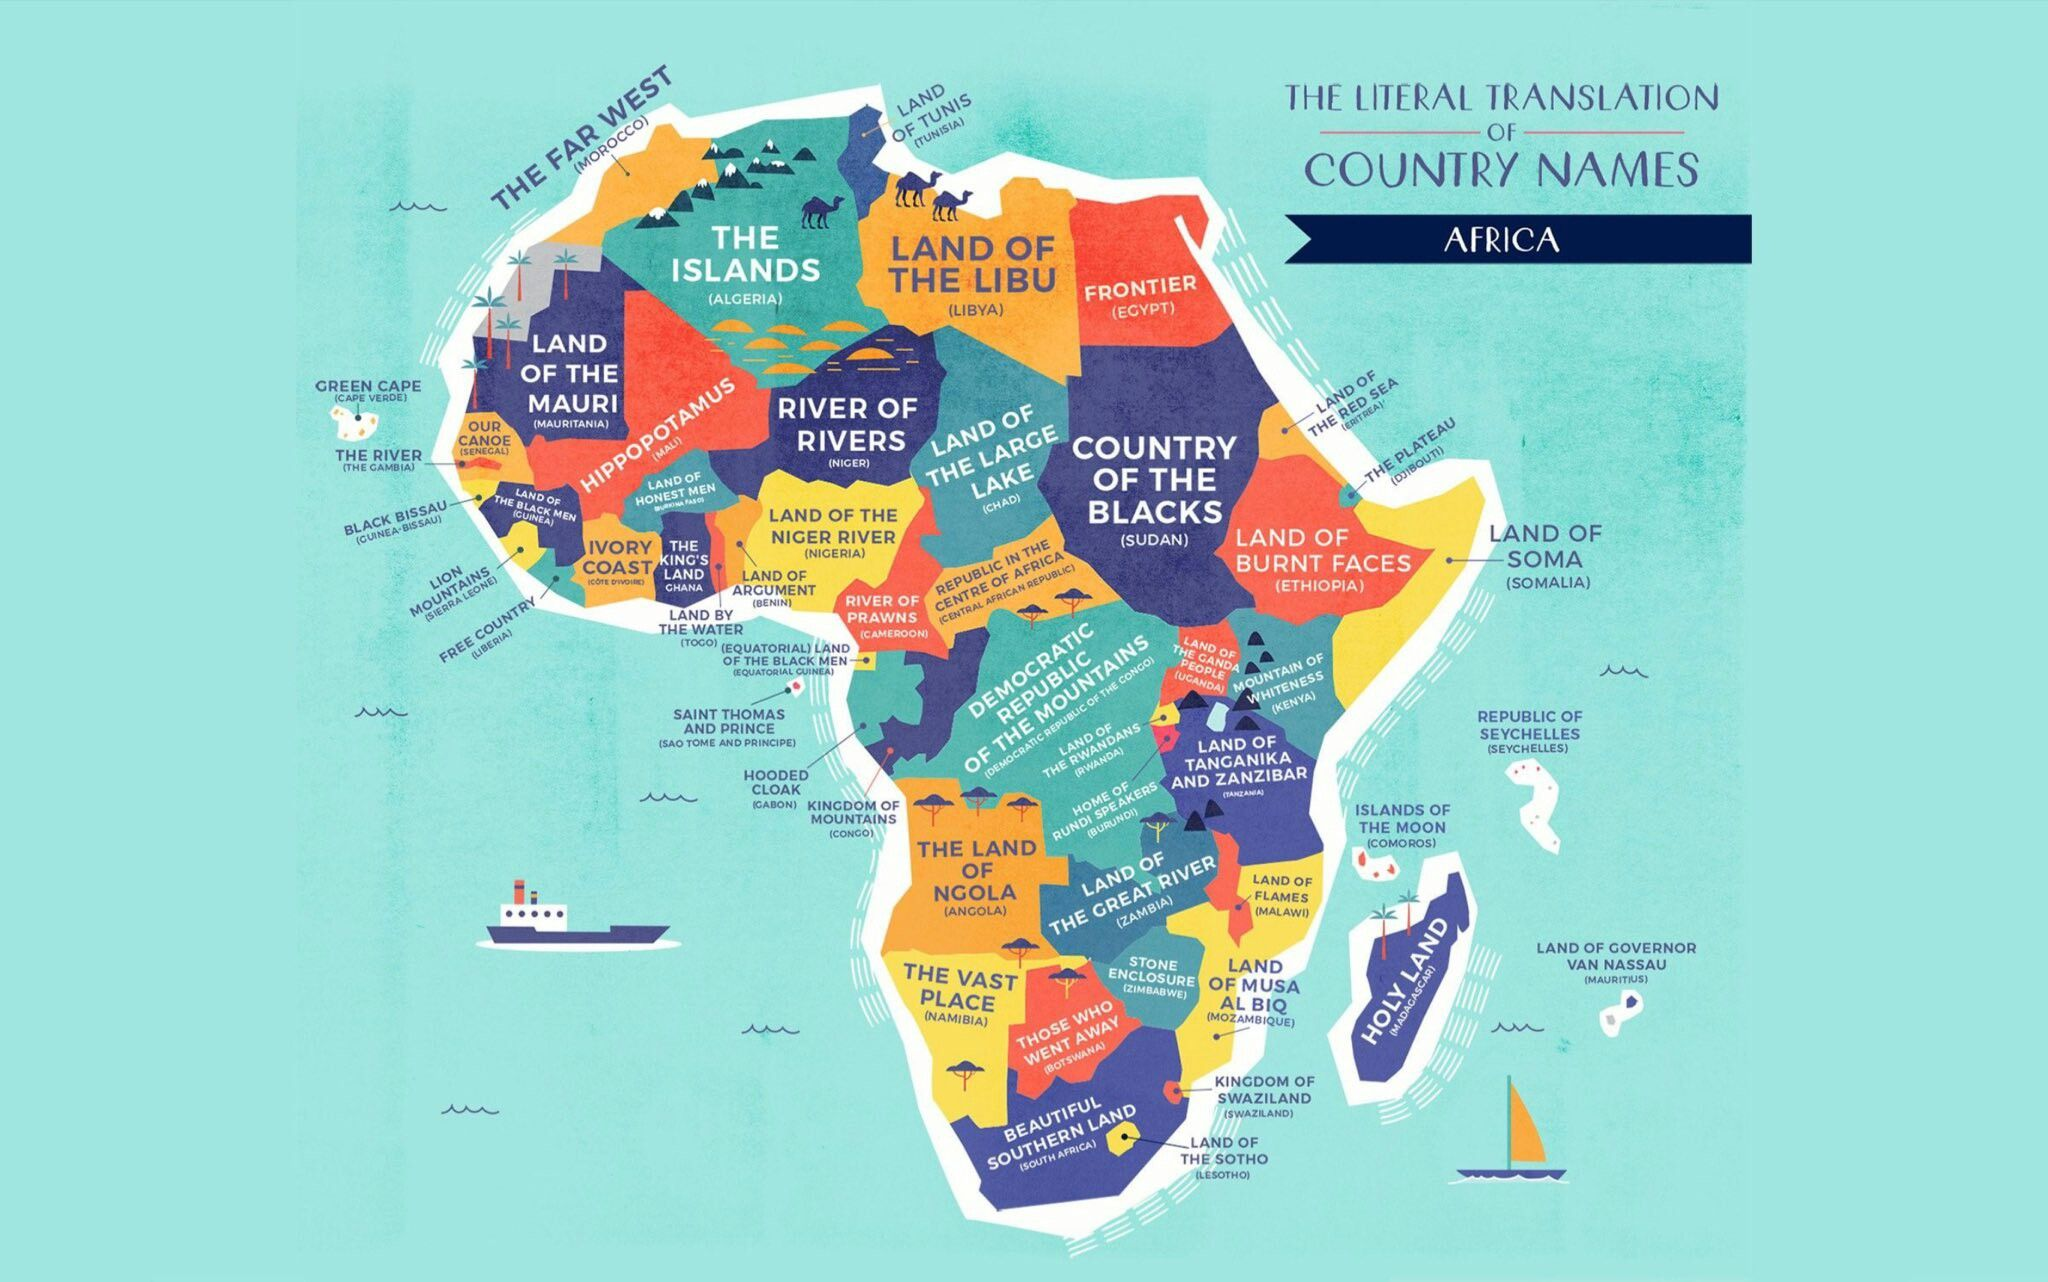 Africa Map With All Countries Names.African Countries And Their Meanings Country Names Africa